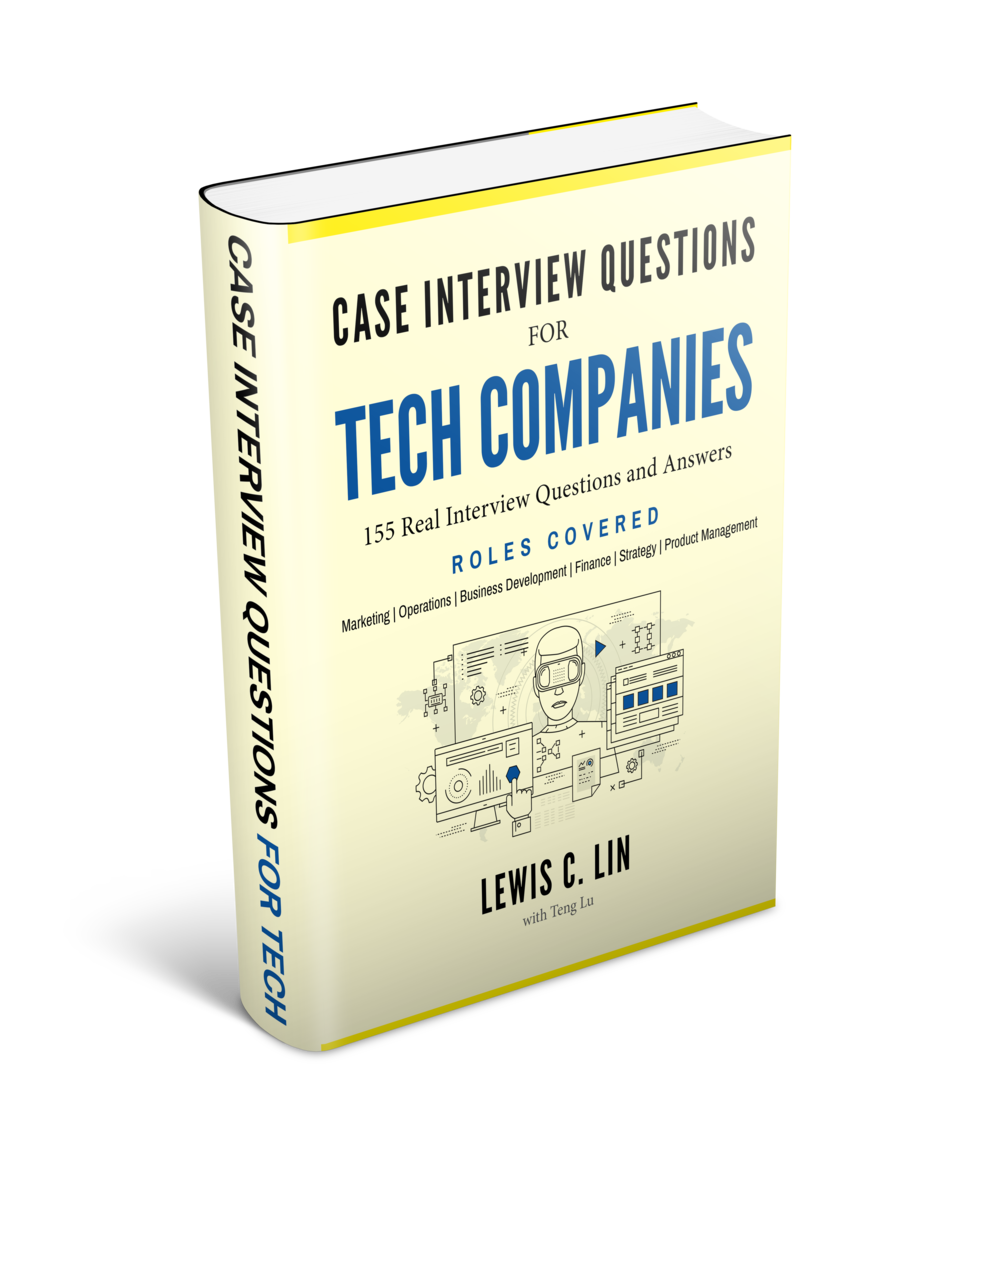 Delightful Case Interview Questions For Tech Companies Provides 155 Practice Questions  And Answers To Conquer Case Interviews For The Following Tech Roles: